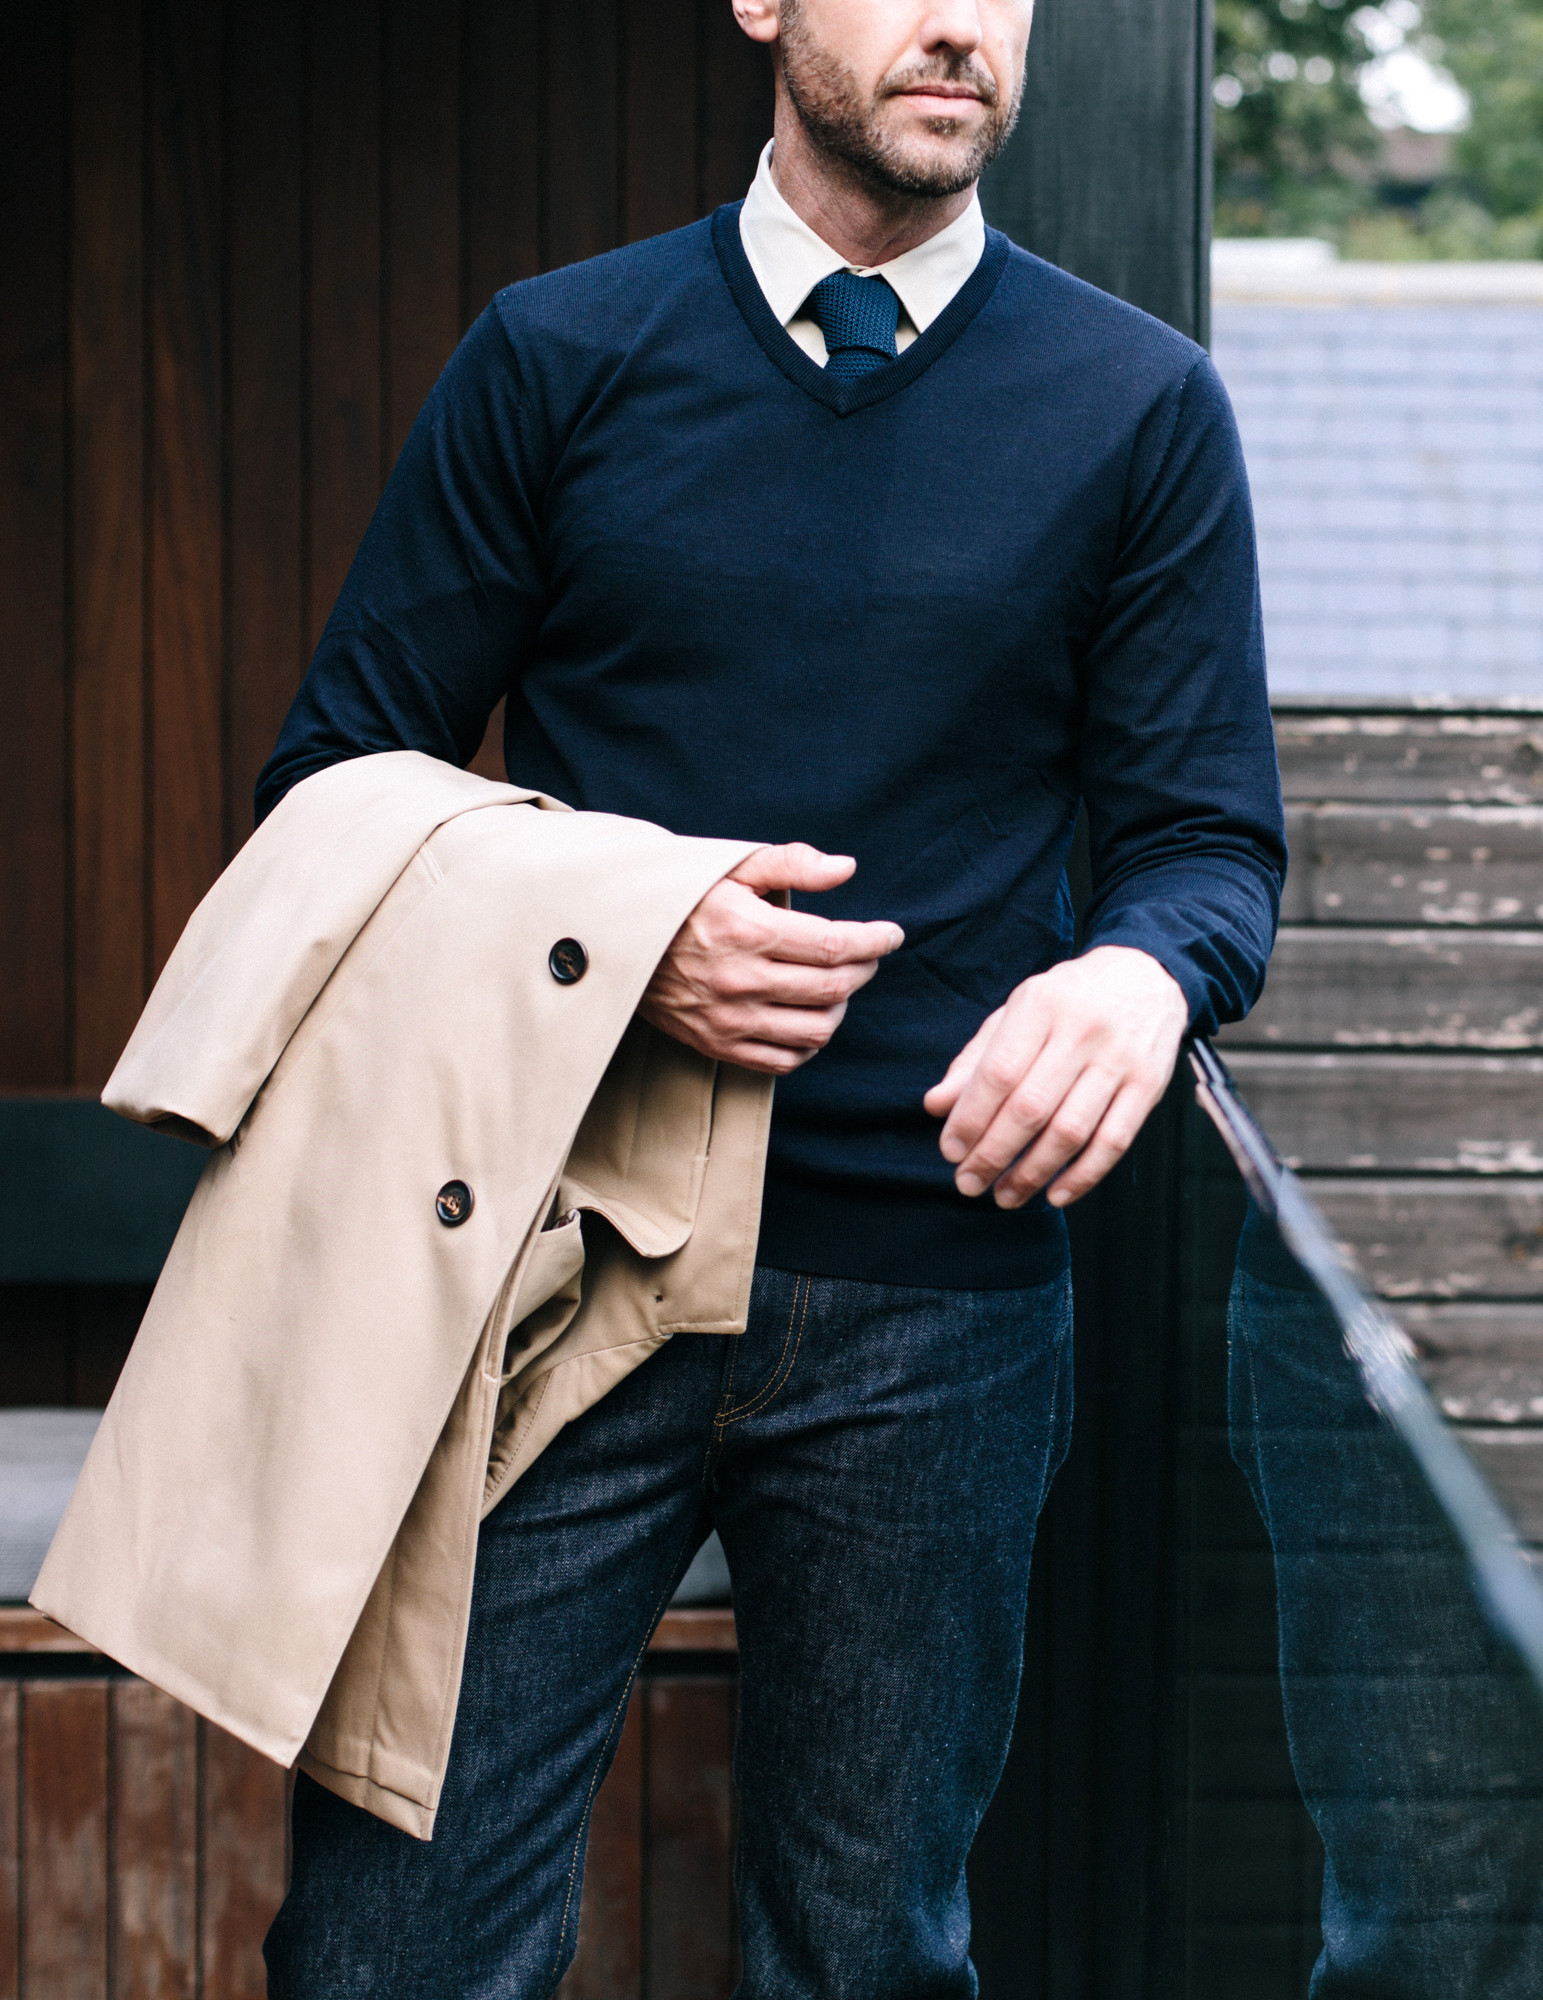 Men's outfit idea for 2021 with stone trench coat, navy v-neck sweater, white dress shirt, dark blue jeans. Suitable for spring, fall and winter.